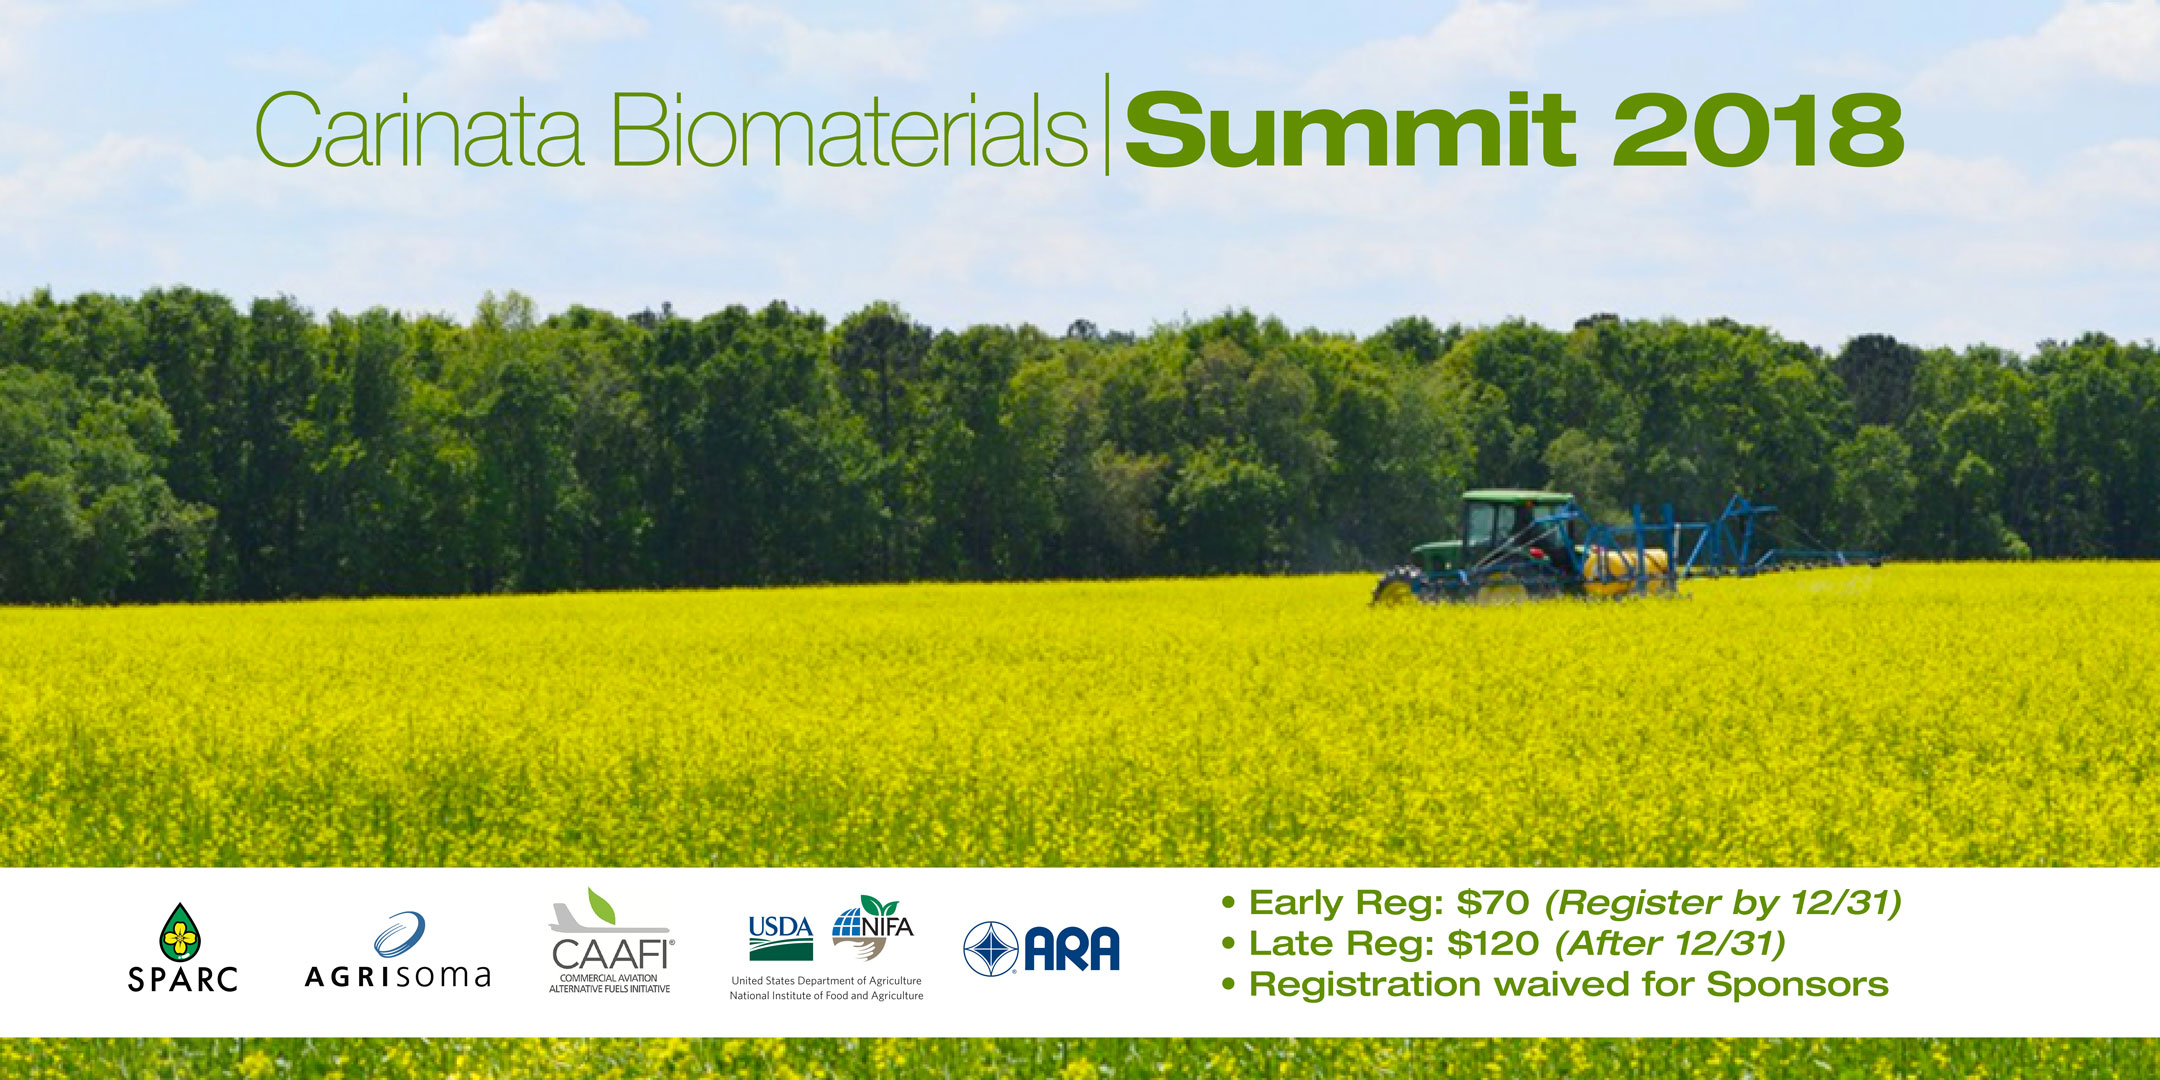 Carinata Biomaterials Summit 2018